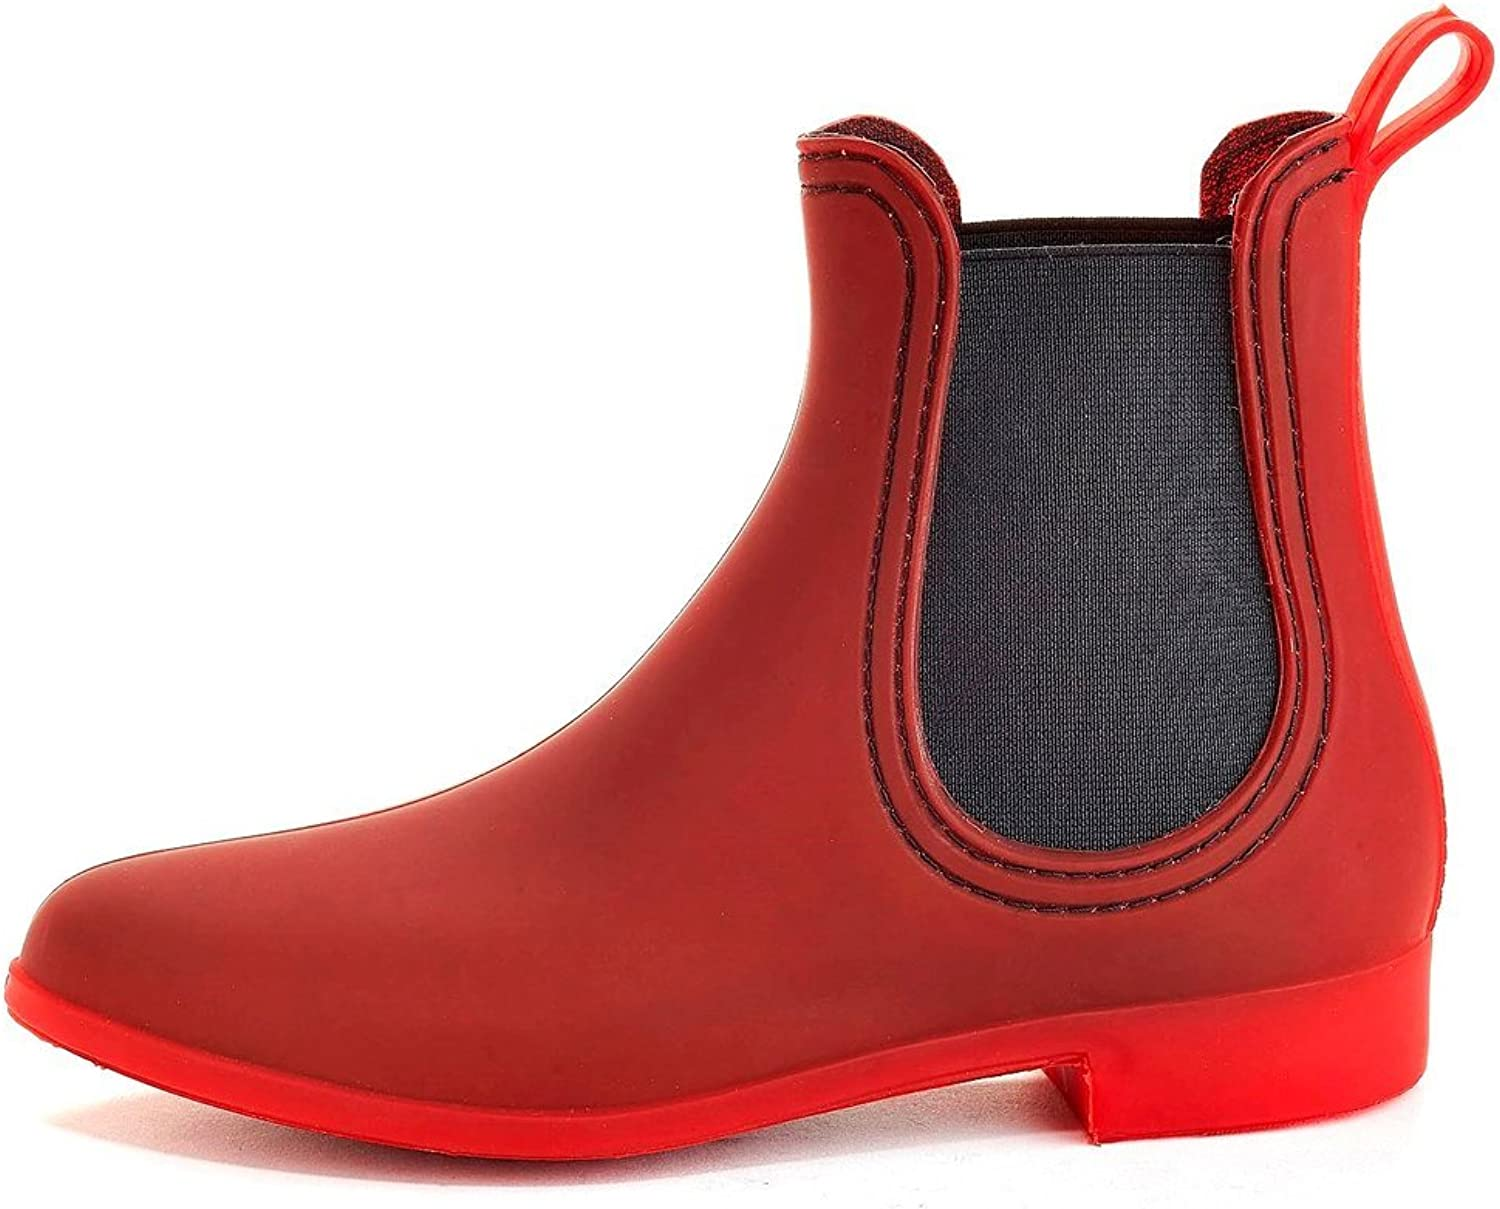 Henry Ferrera Women's Clarity Sky 7 inches (Over The Ankle) Rubber Rainboot & Gardenboot with Comfortable Insole